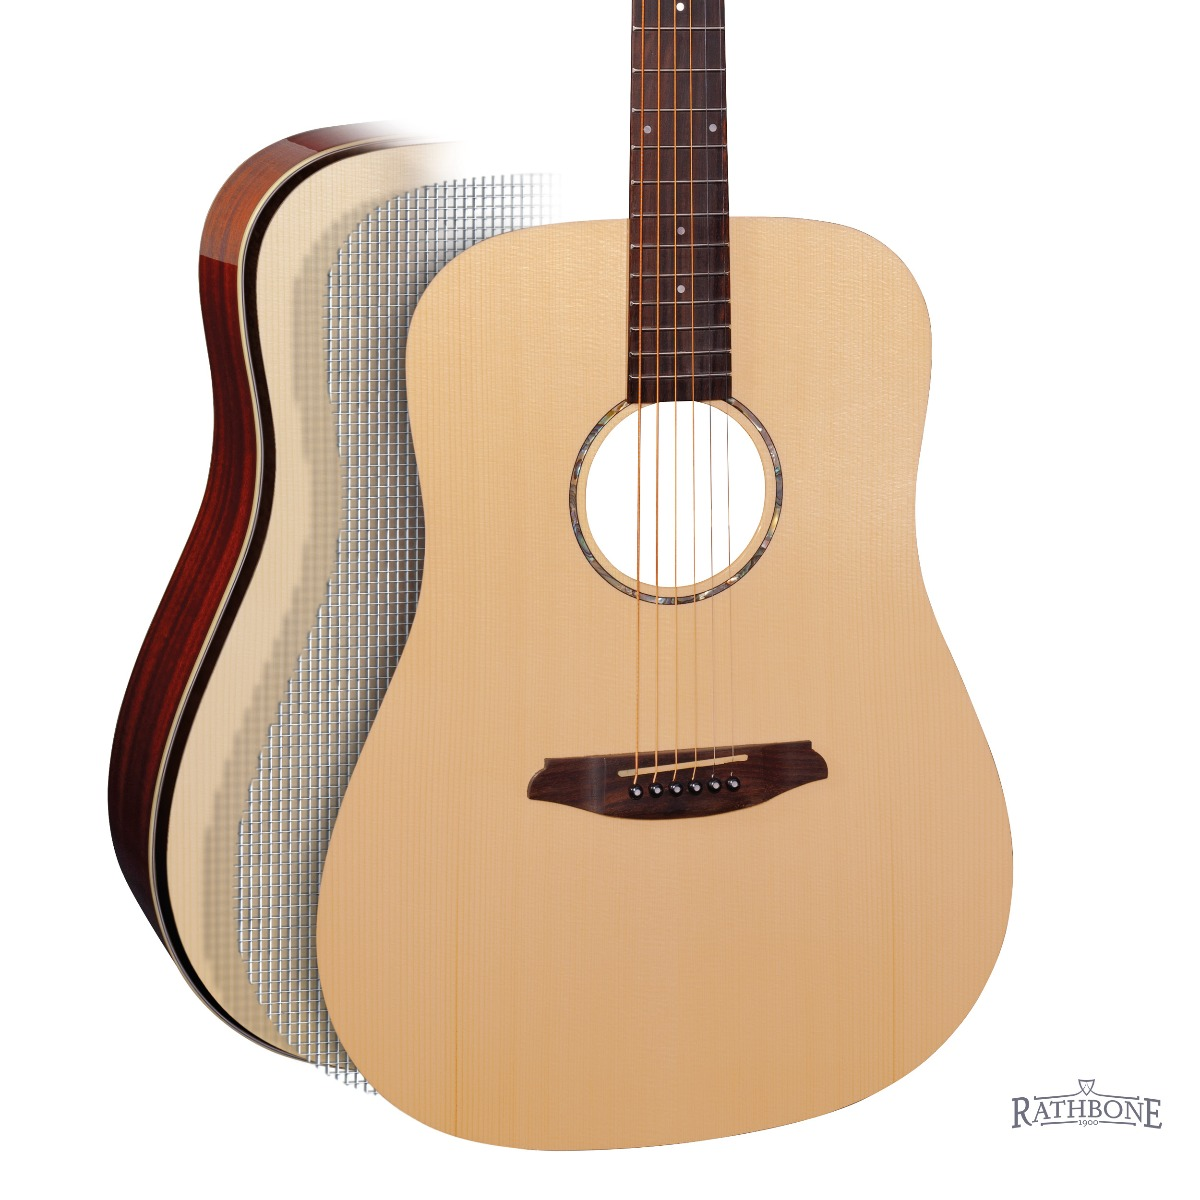 Rathbobne Double-Top Acoustic Guitar